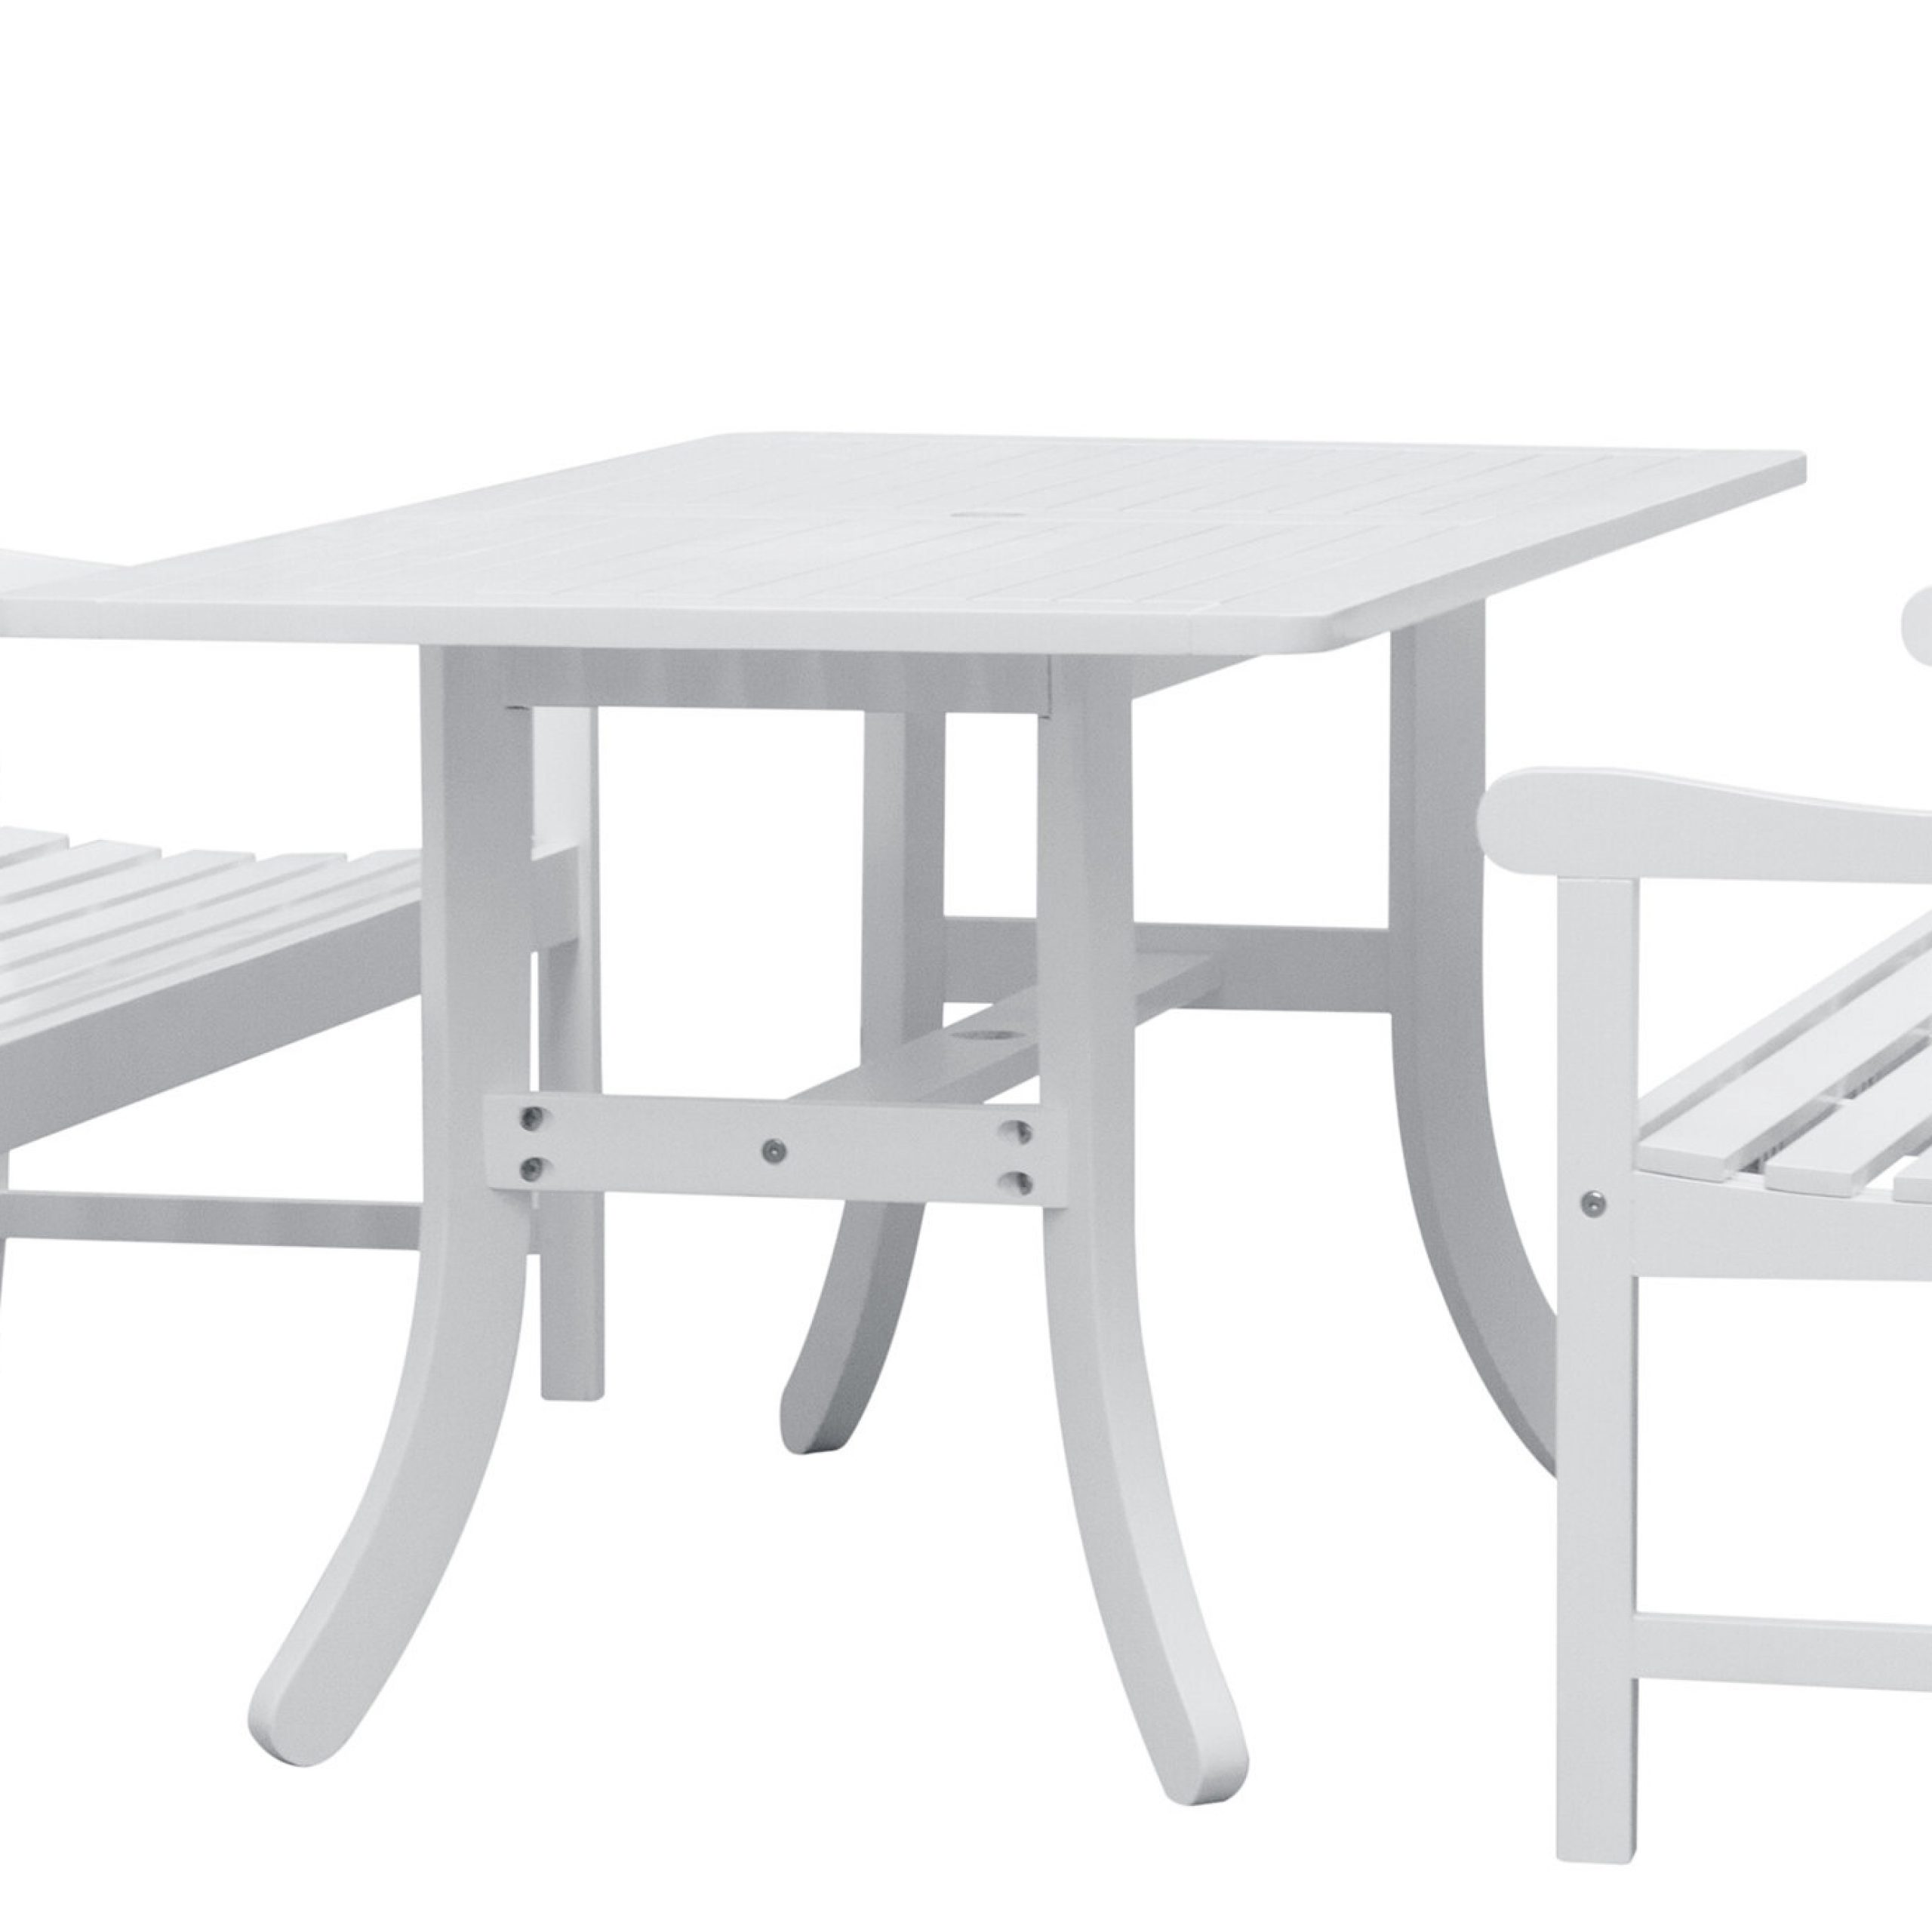 Amabel Patio Diamond Wooden Garden Benches Throughout Favorite Amabel 3 Piece Patio Dining Set (View 12 of 30)